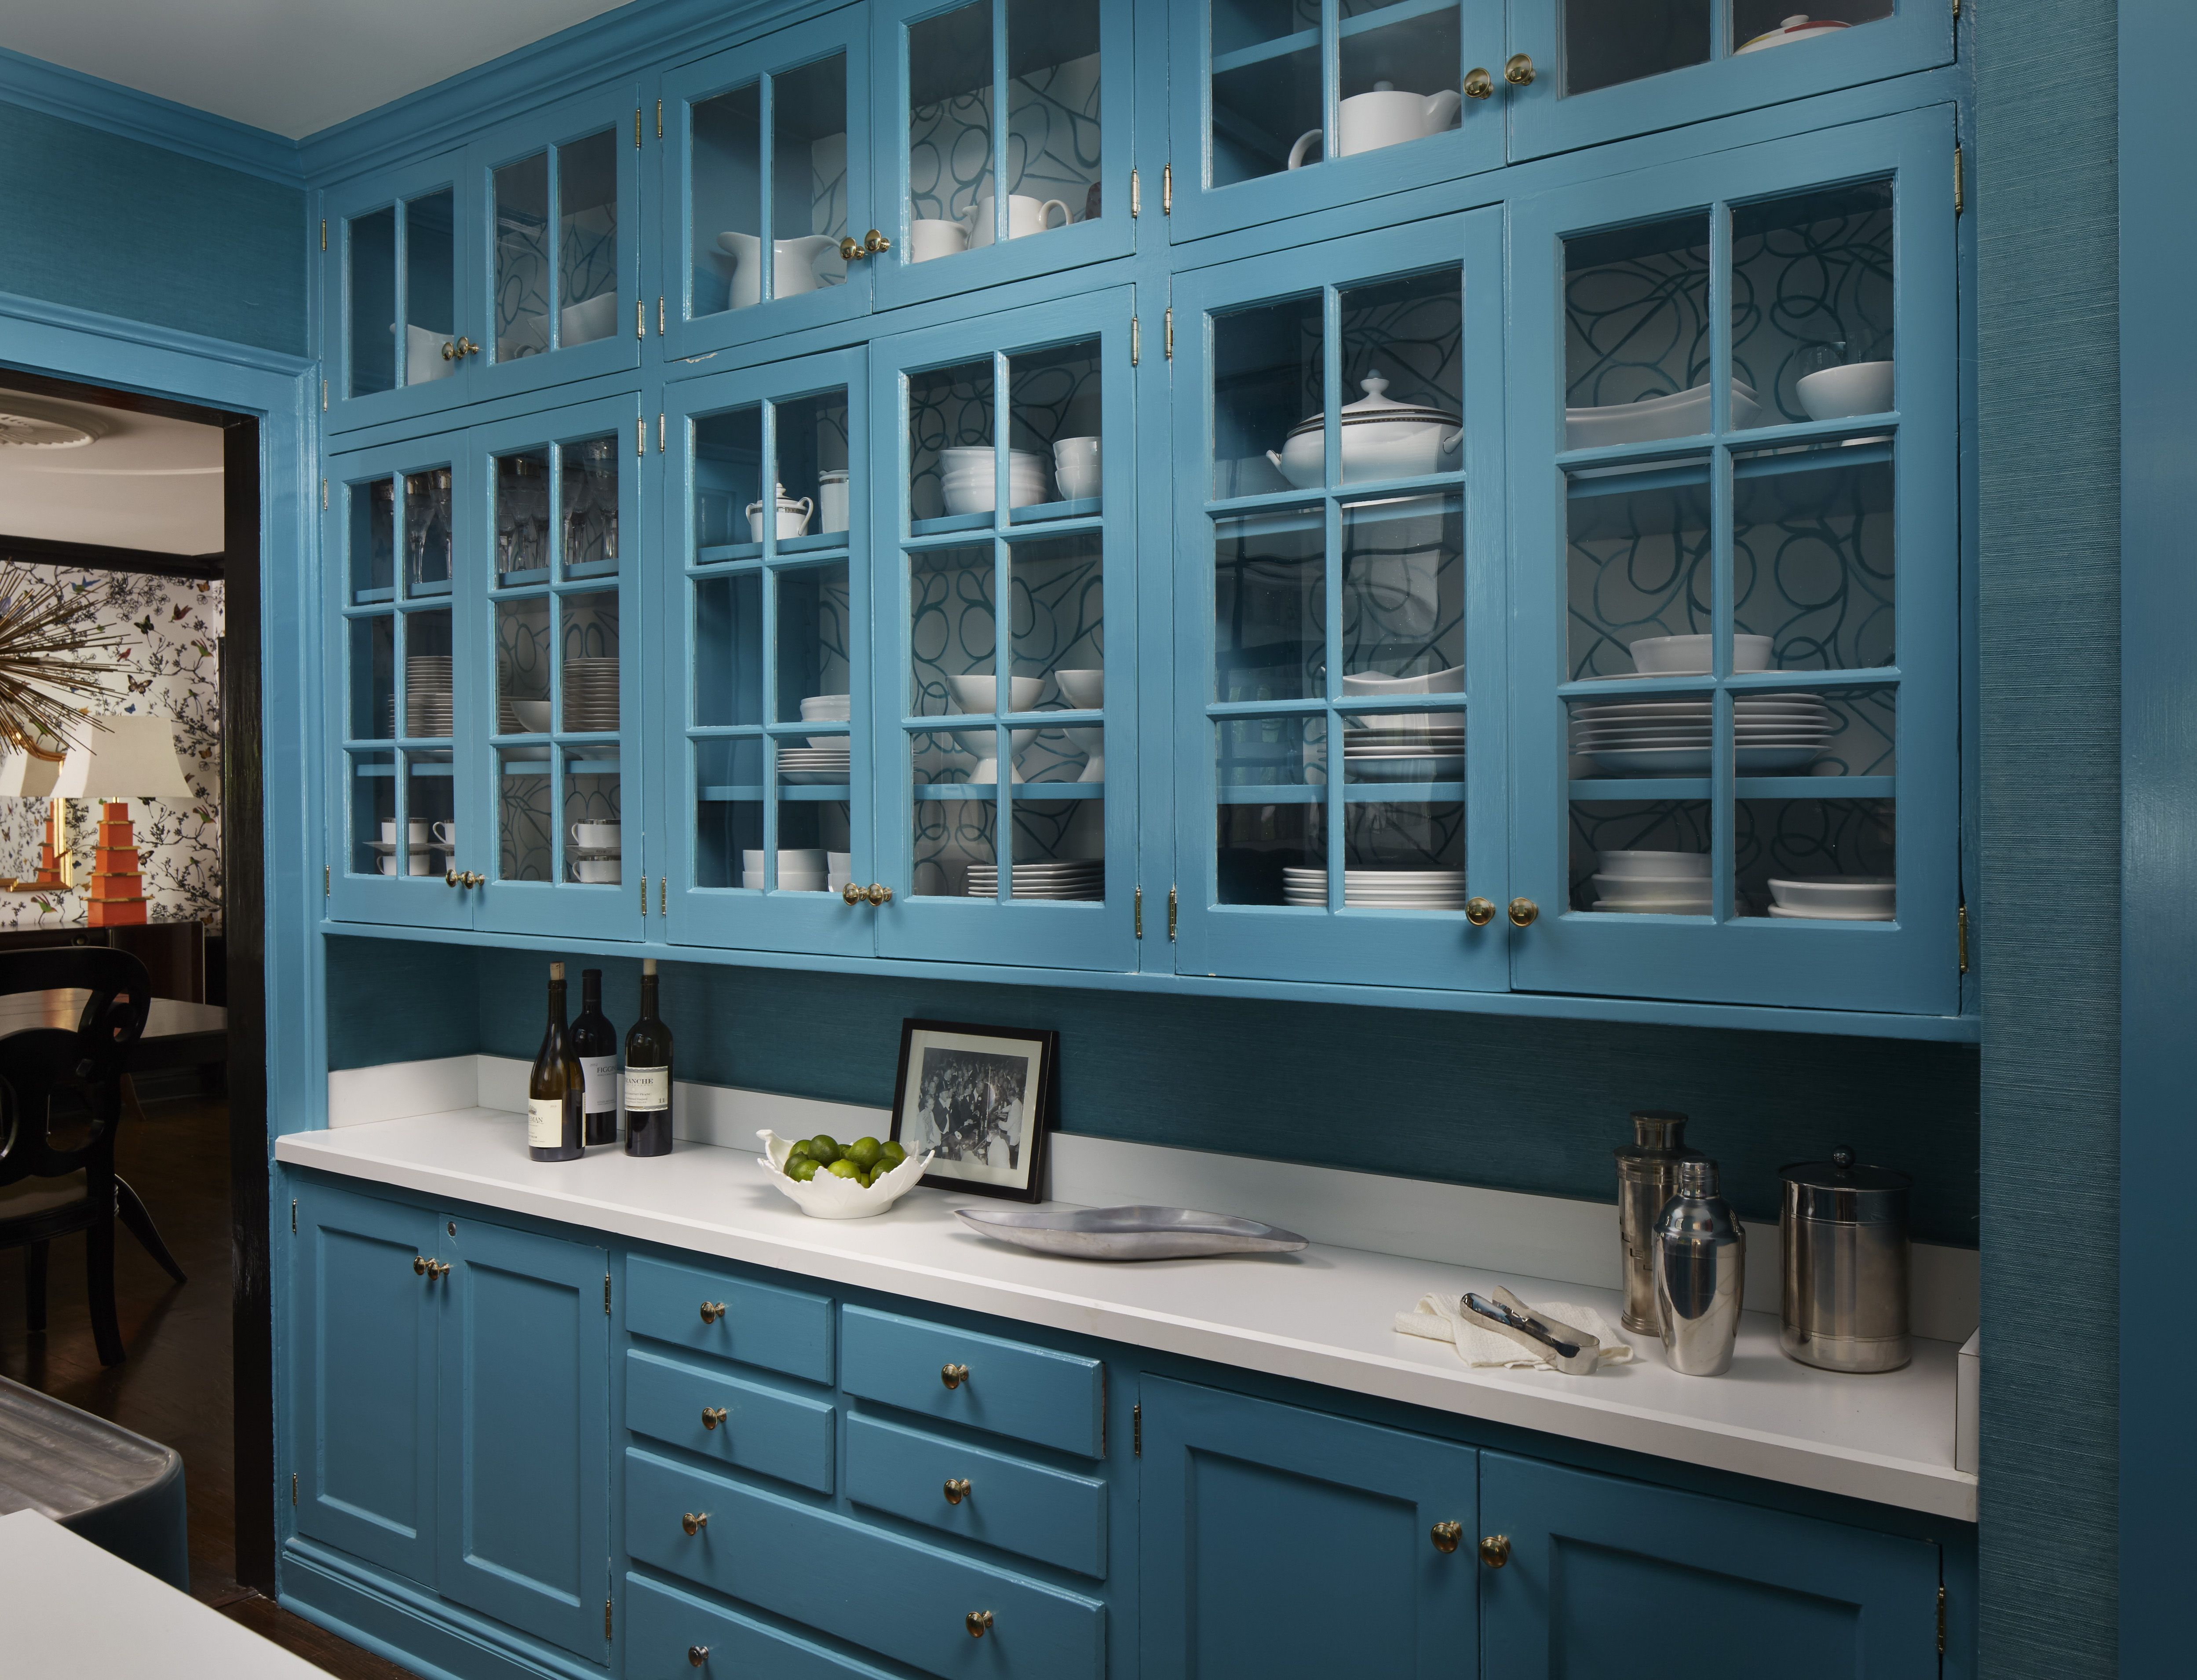 36 Chic Butlers Pantry Ideas What Is A Butlers Pantry